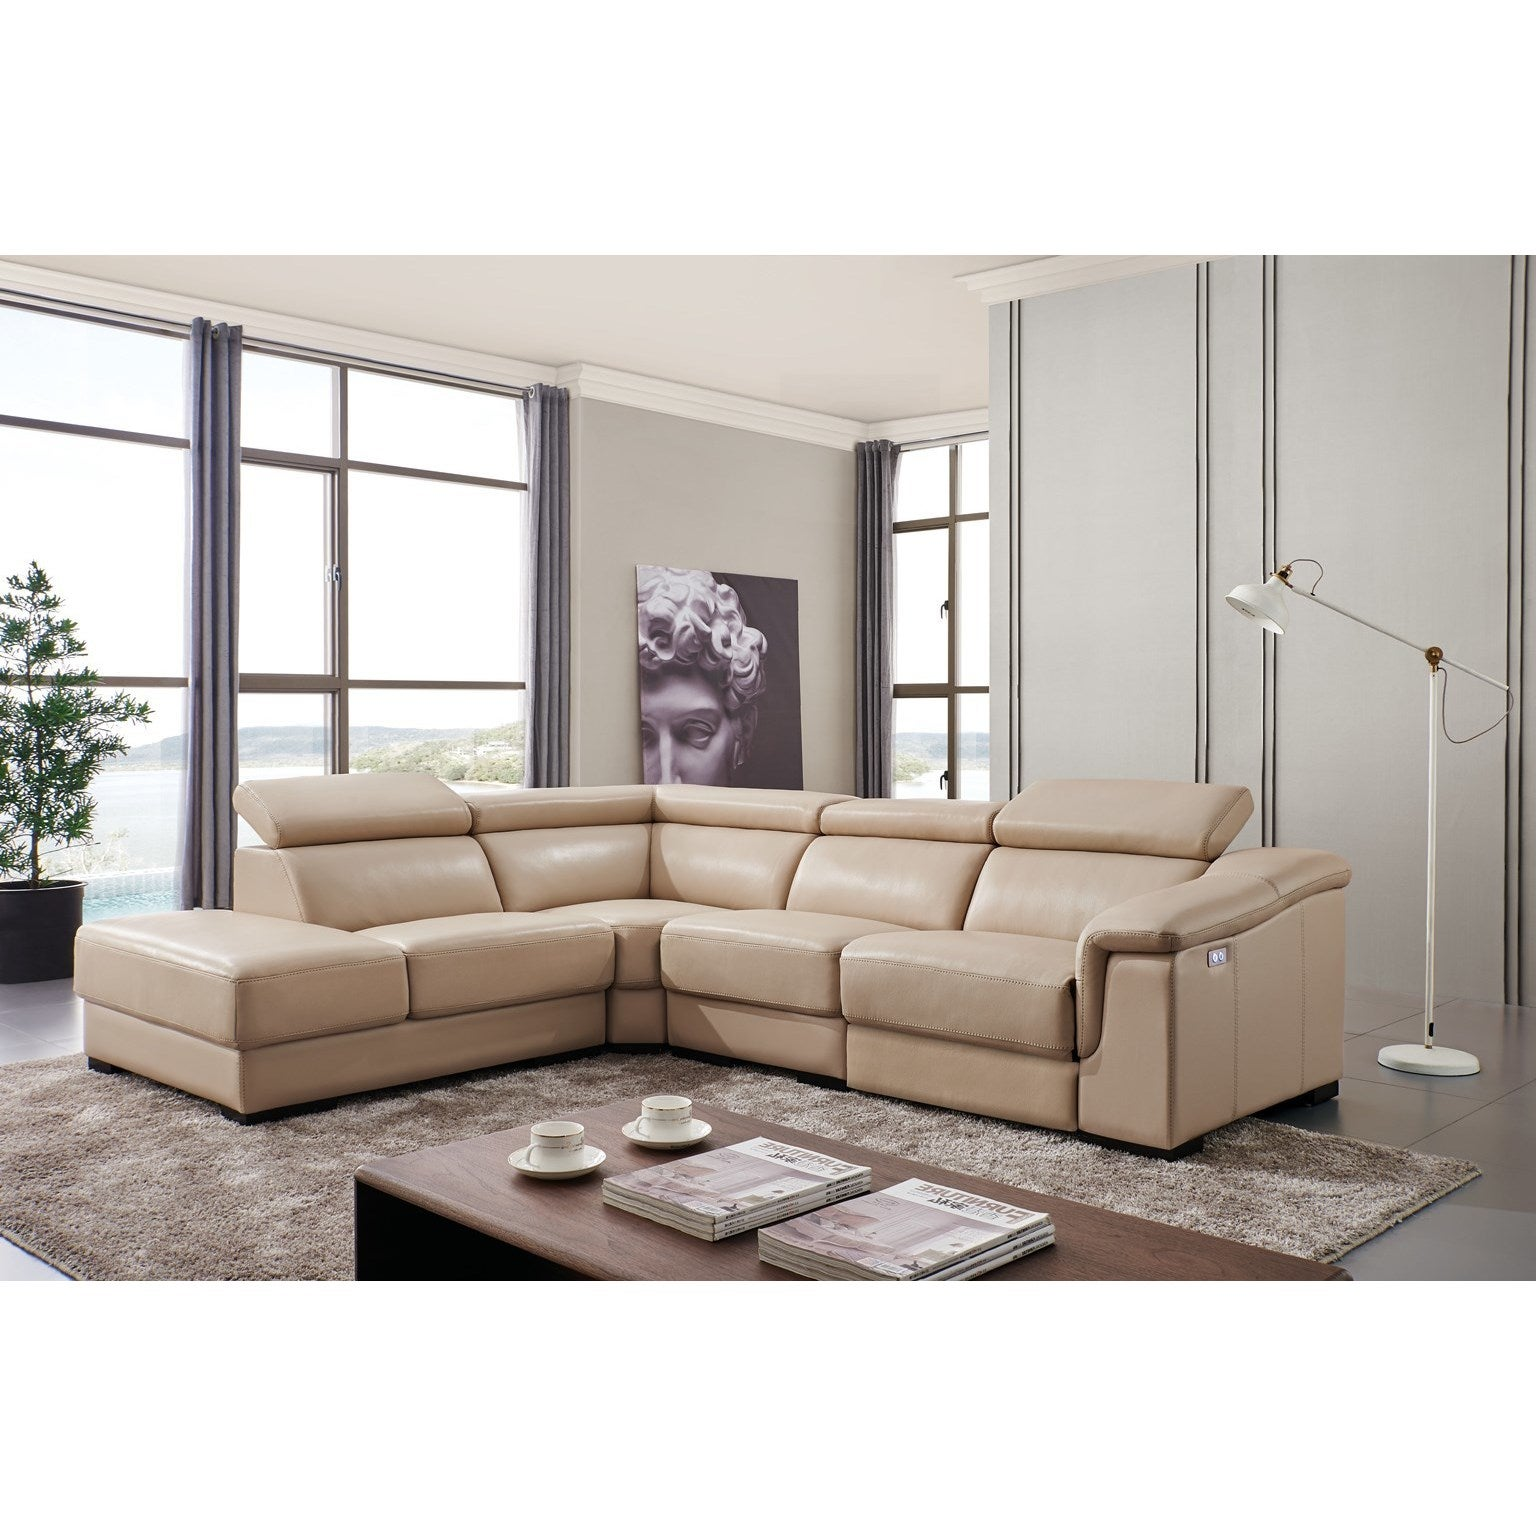 Luca Home Aaron Power Reclining Sectional - Free Shipping Today ...